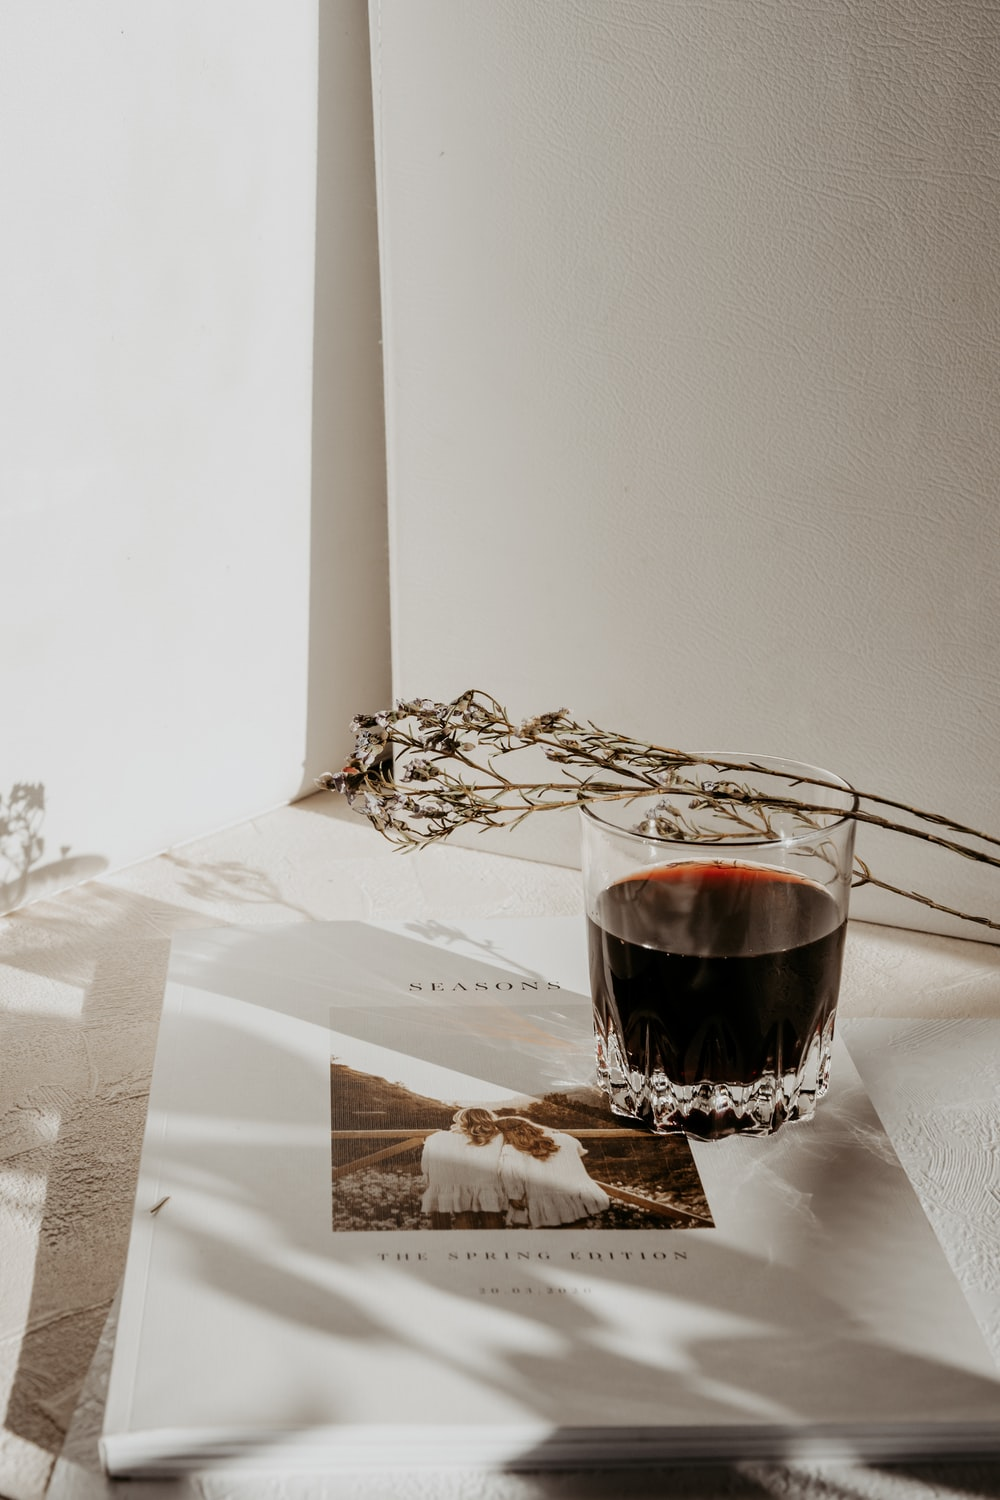 clear wine glass on white paper